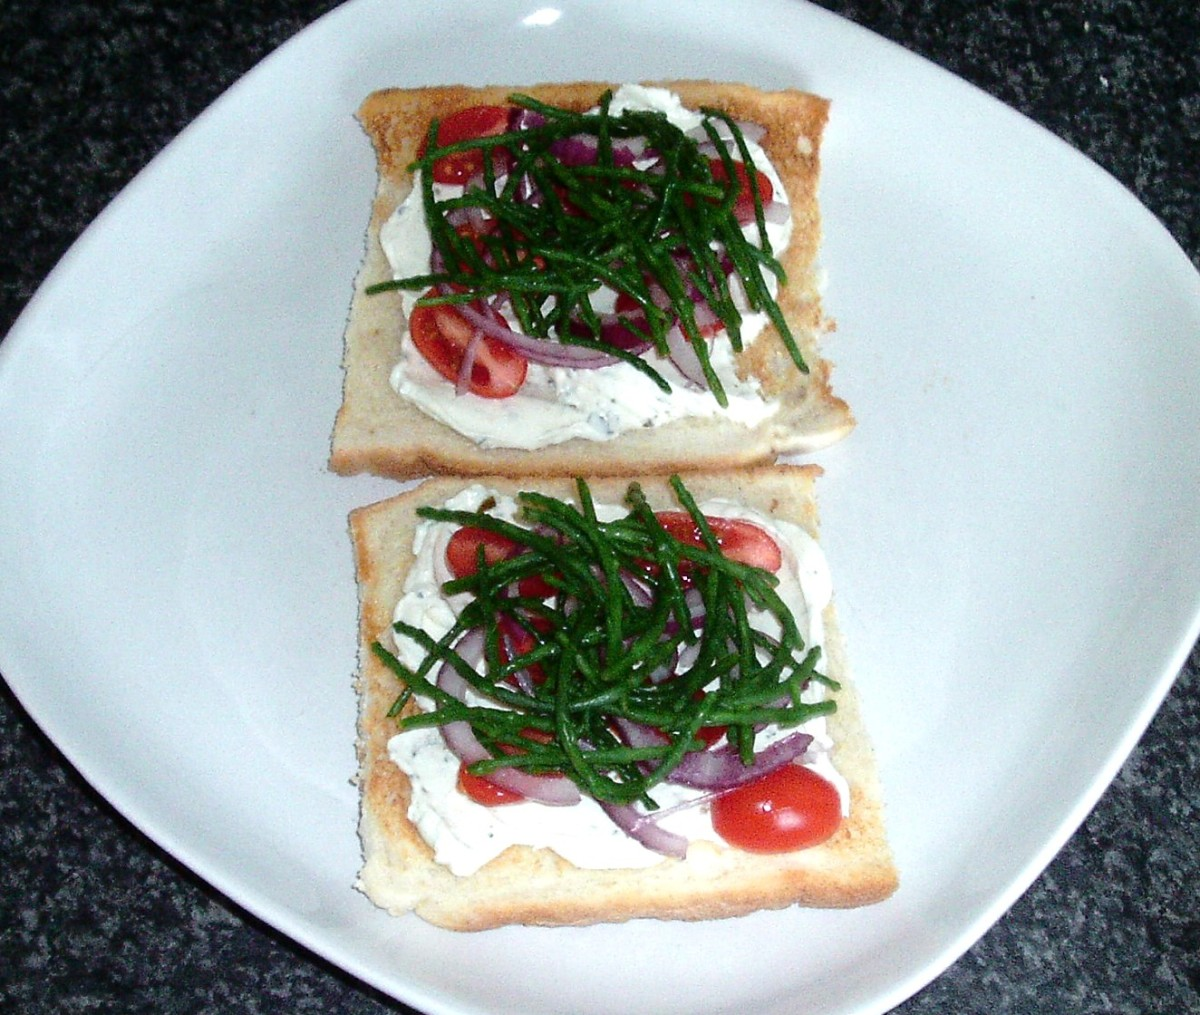 Cream cheese is spread on toast and topped with tomatoes, red onion and samphire